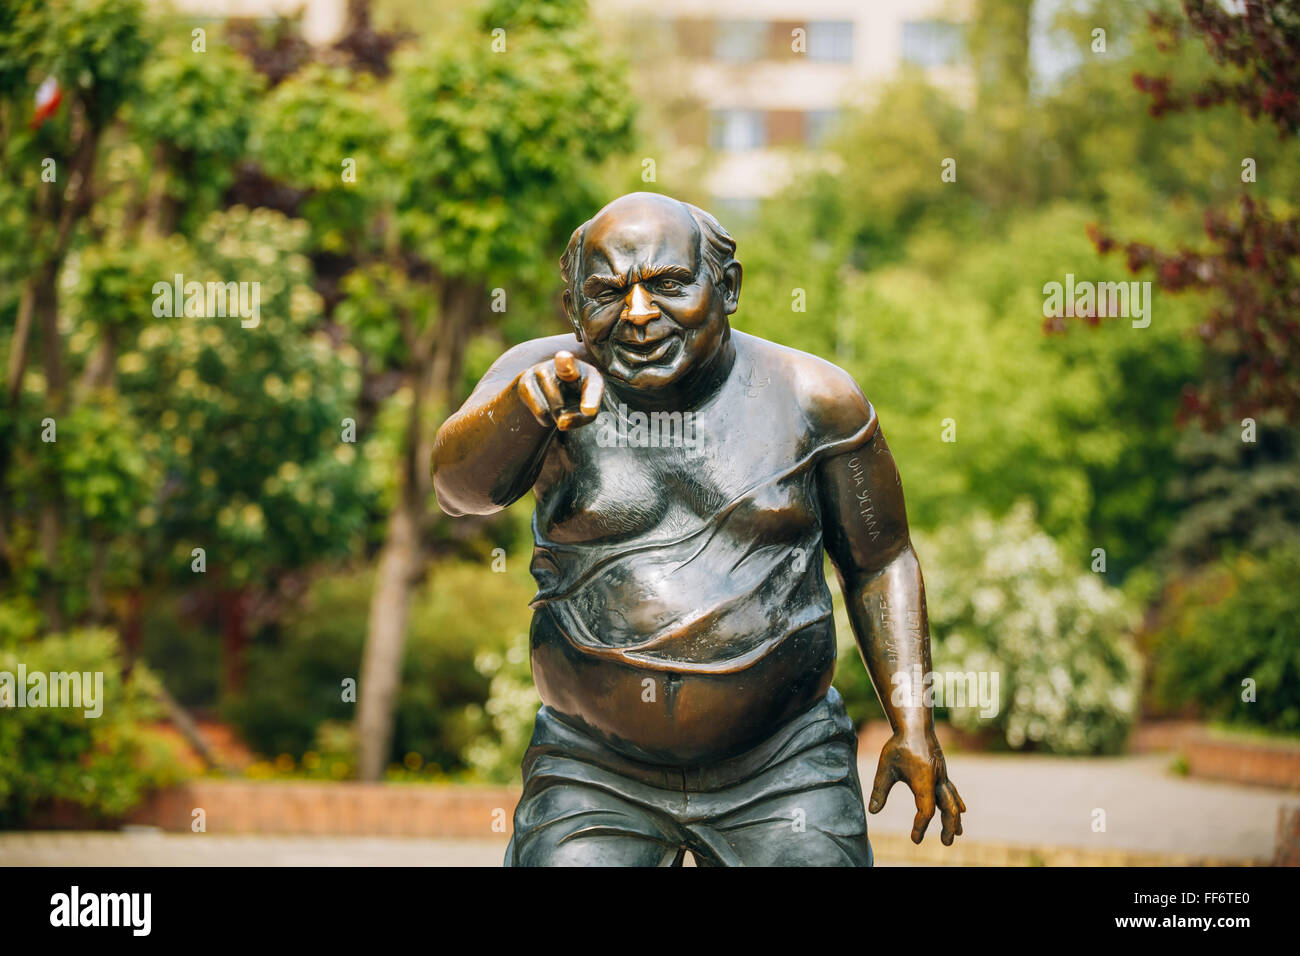 Moscow, Russia, May, 24, 2015: Monument to the great Soviet actor Yevgeny Leonov in the role of associate professor - Stock Image